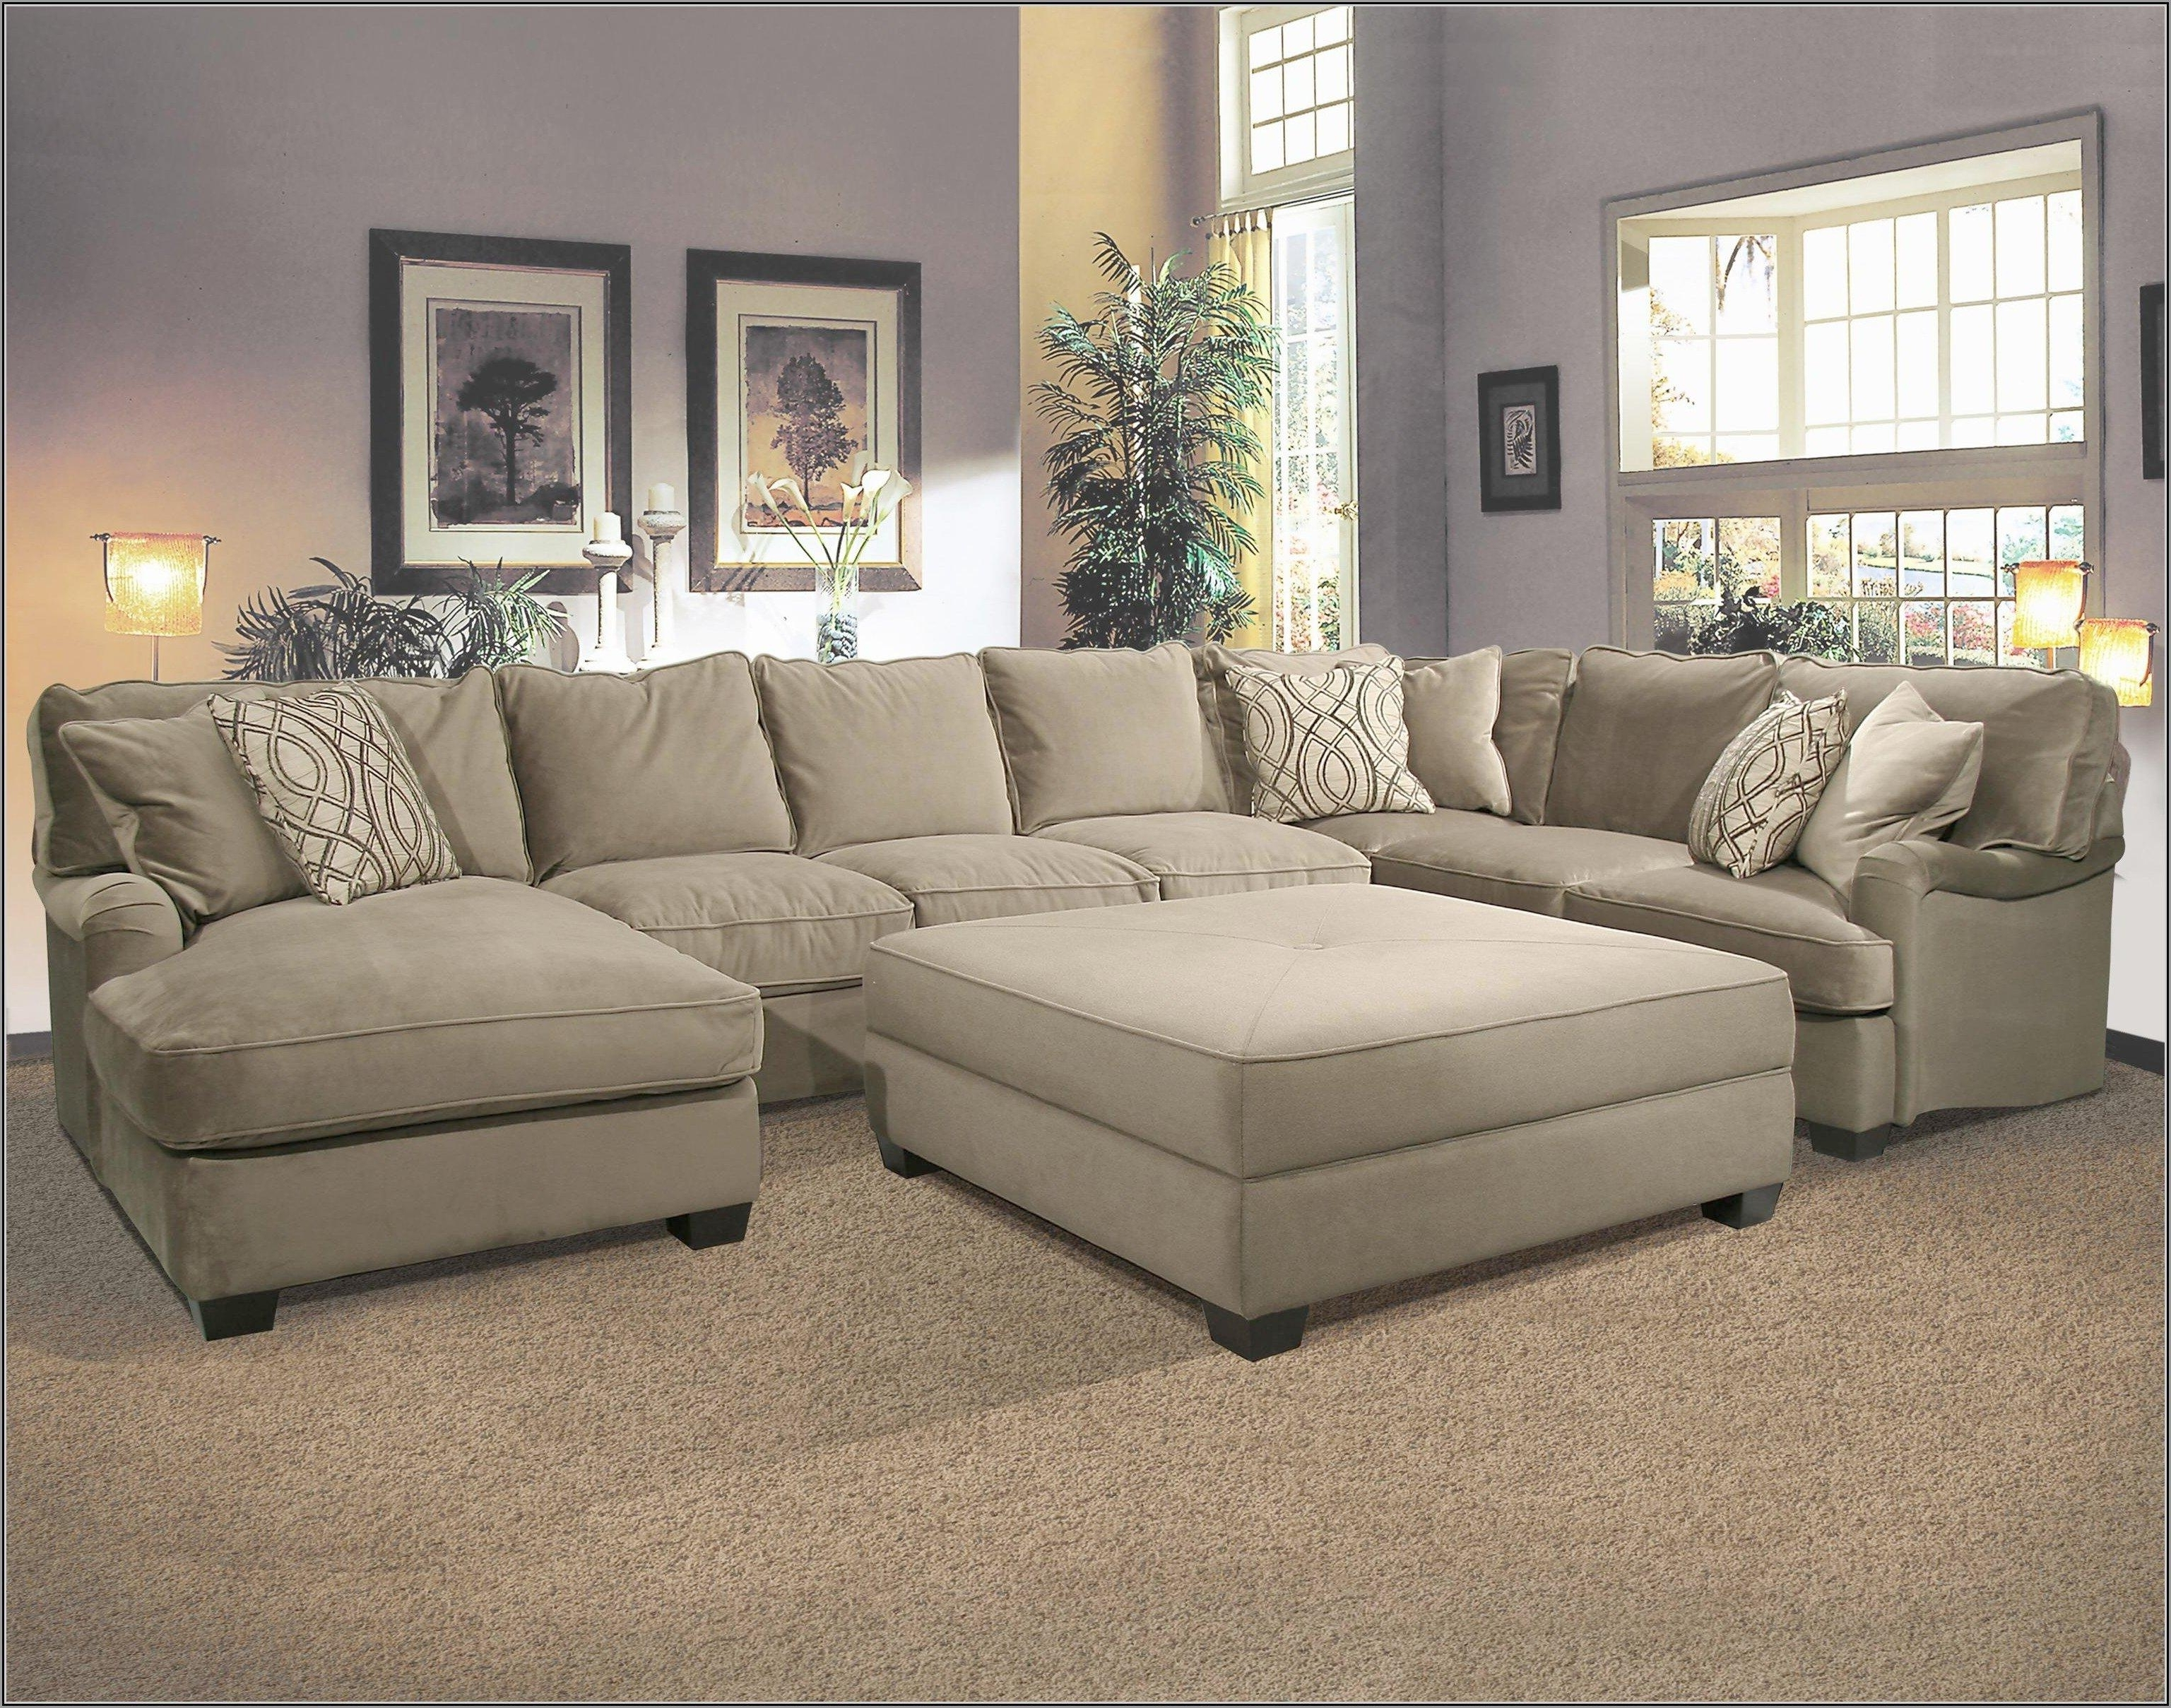 Sofa : Deep Seated Sectional New Sectional Sofa With Ottoman Deep With Most Current Leather Sectional Sofas With Ottoman (View 17 of 20)